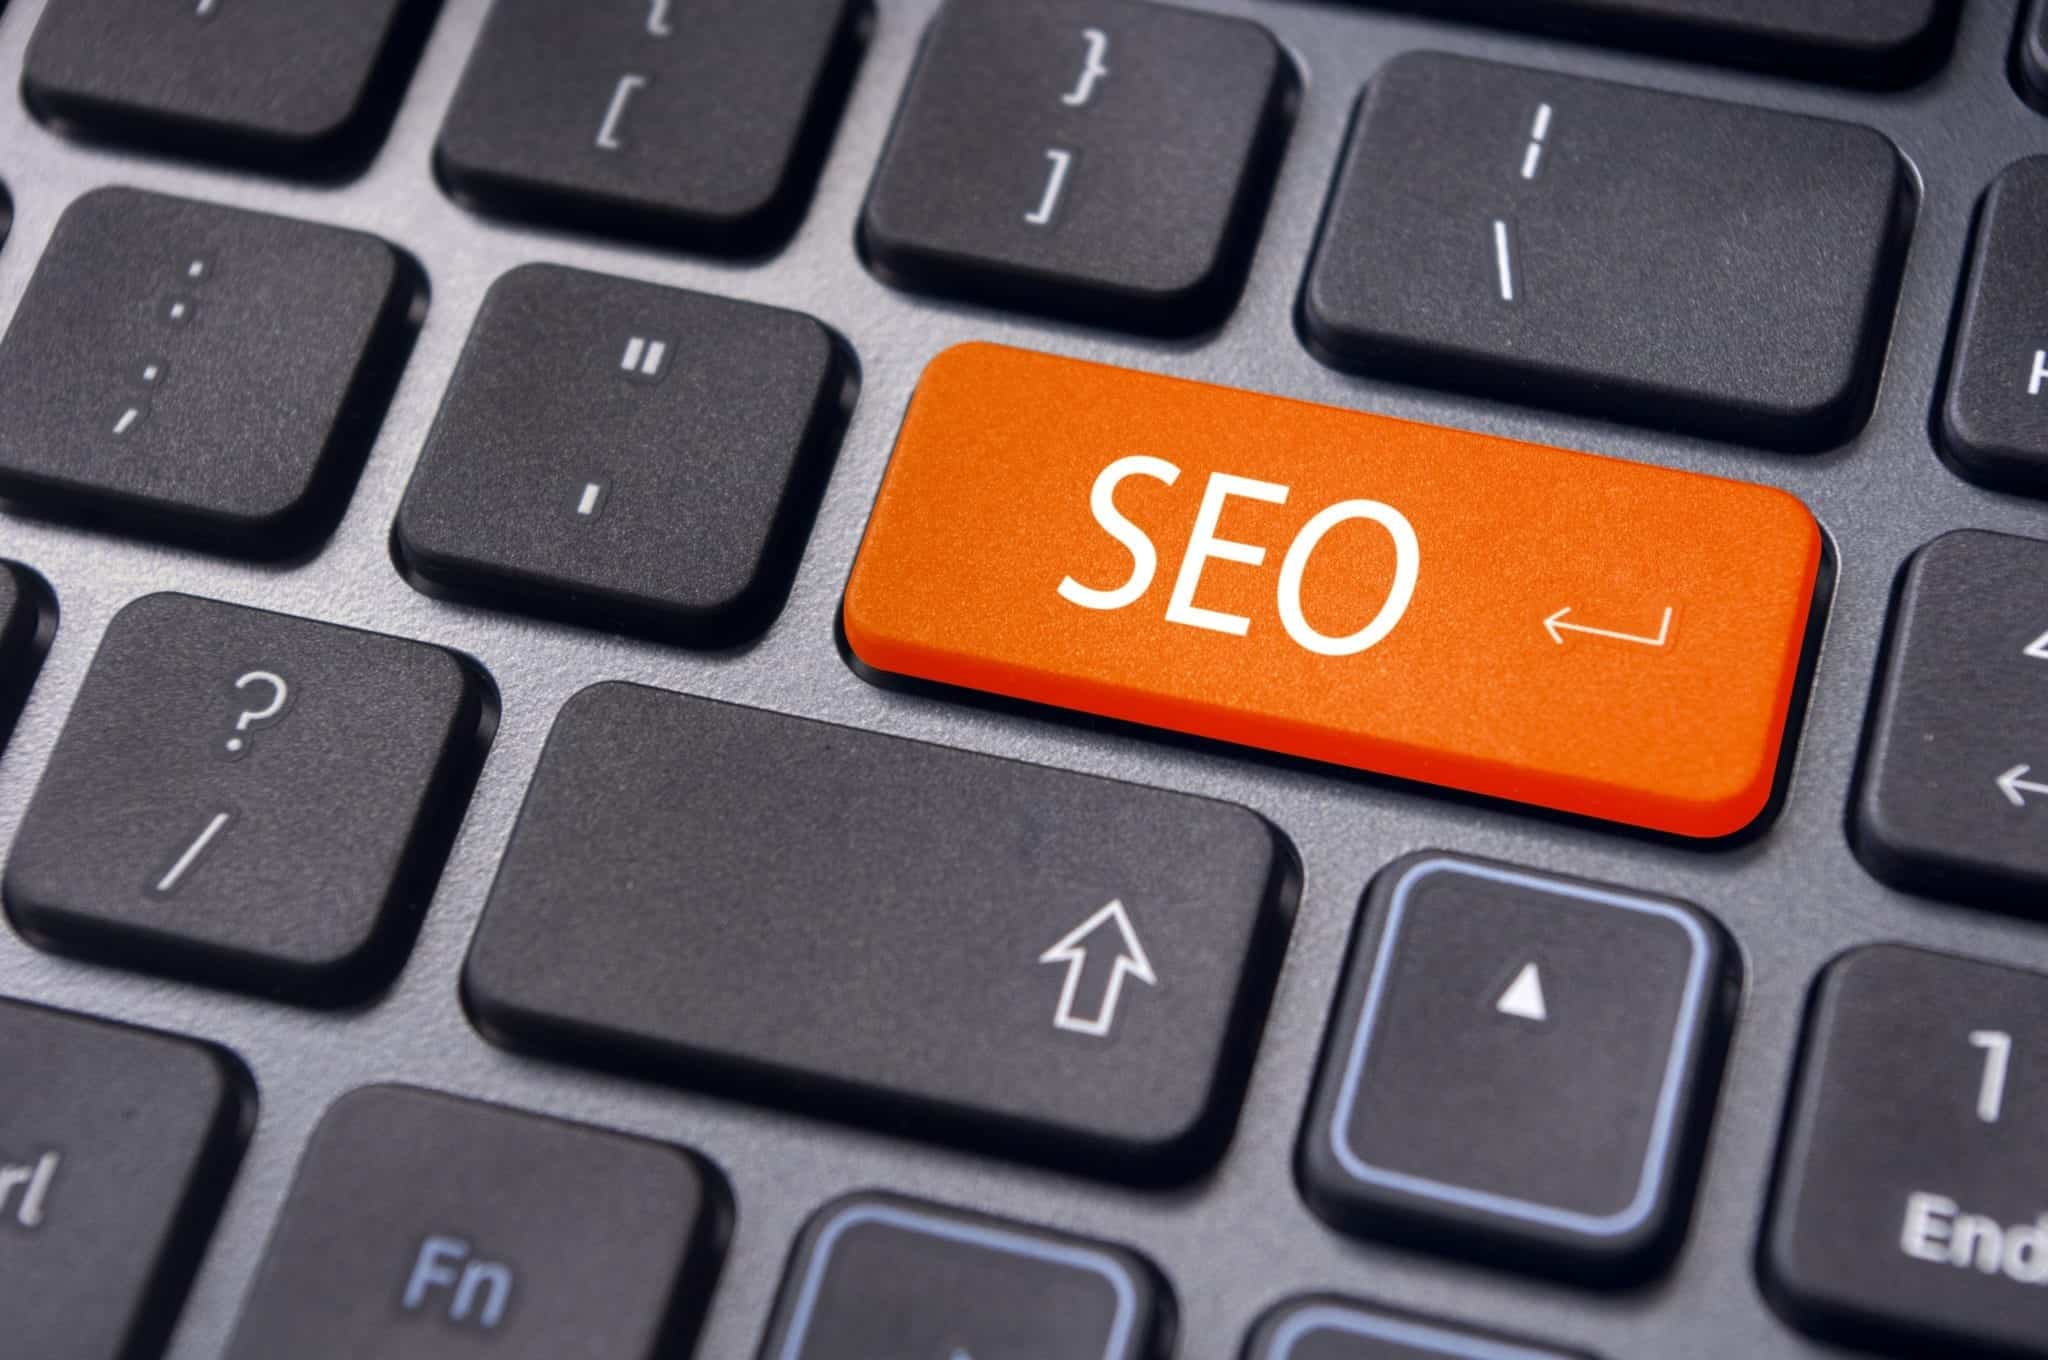 Top signs that you need a real professional to handle your SEO.